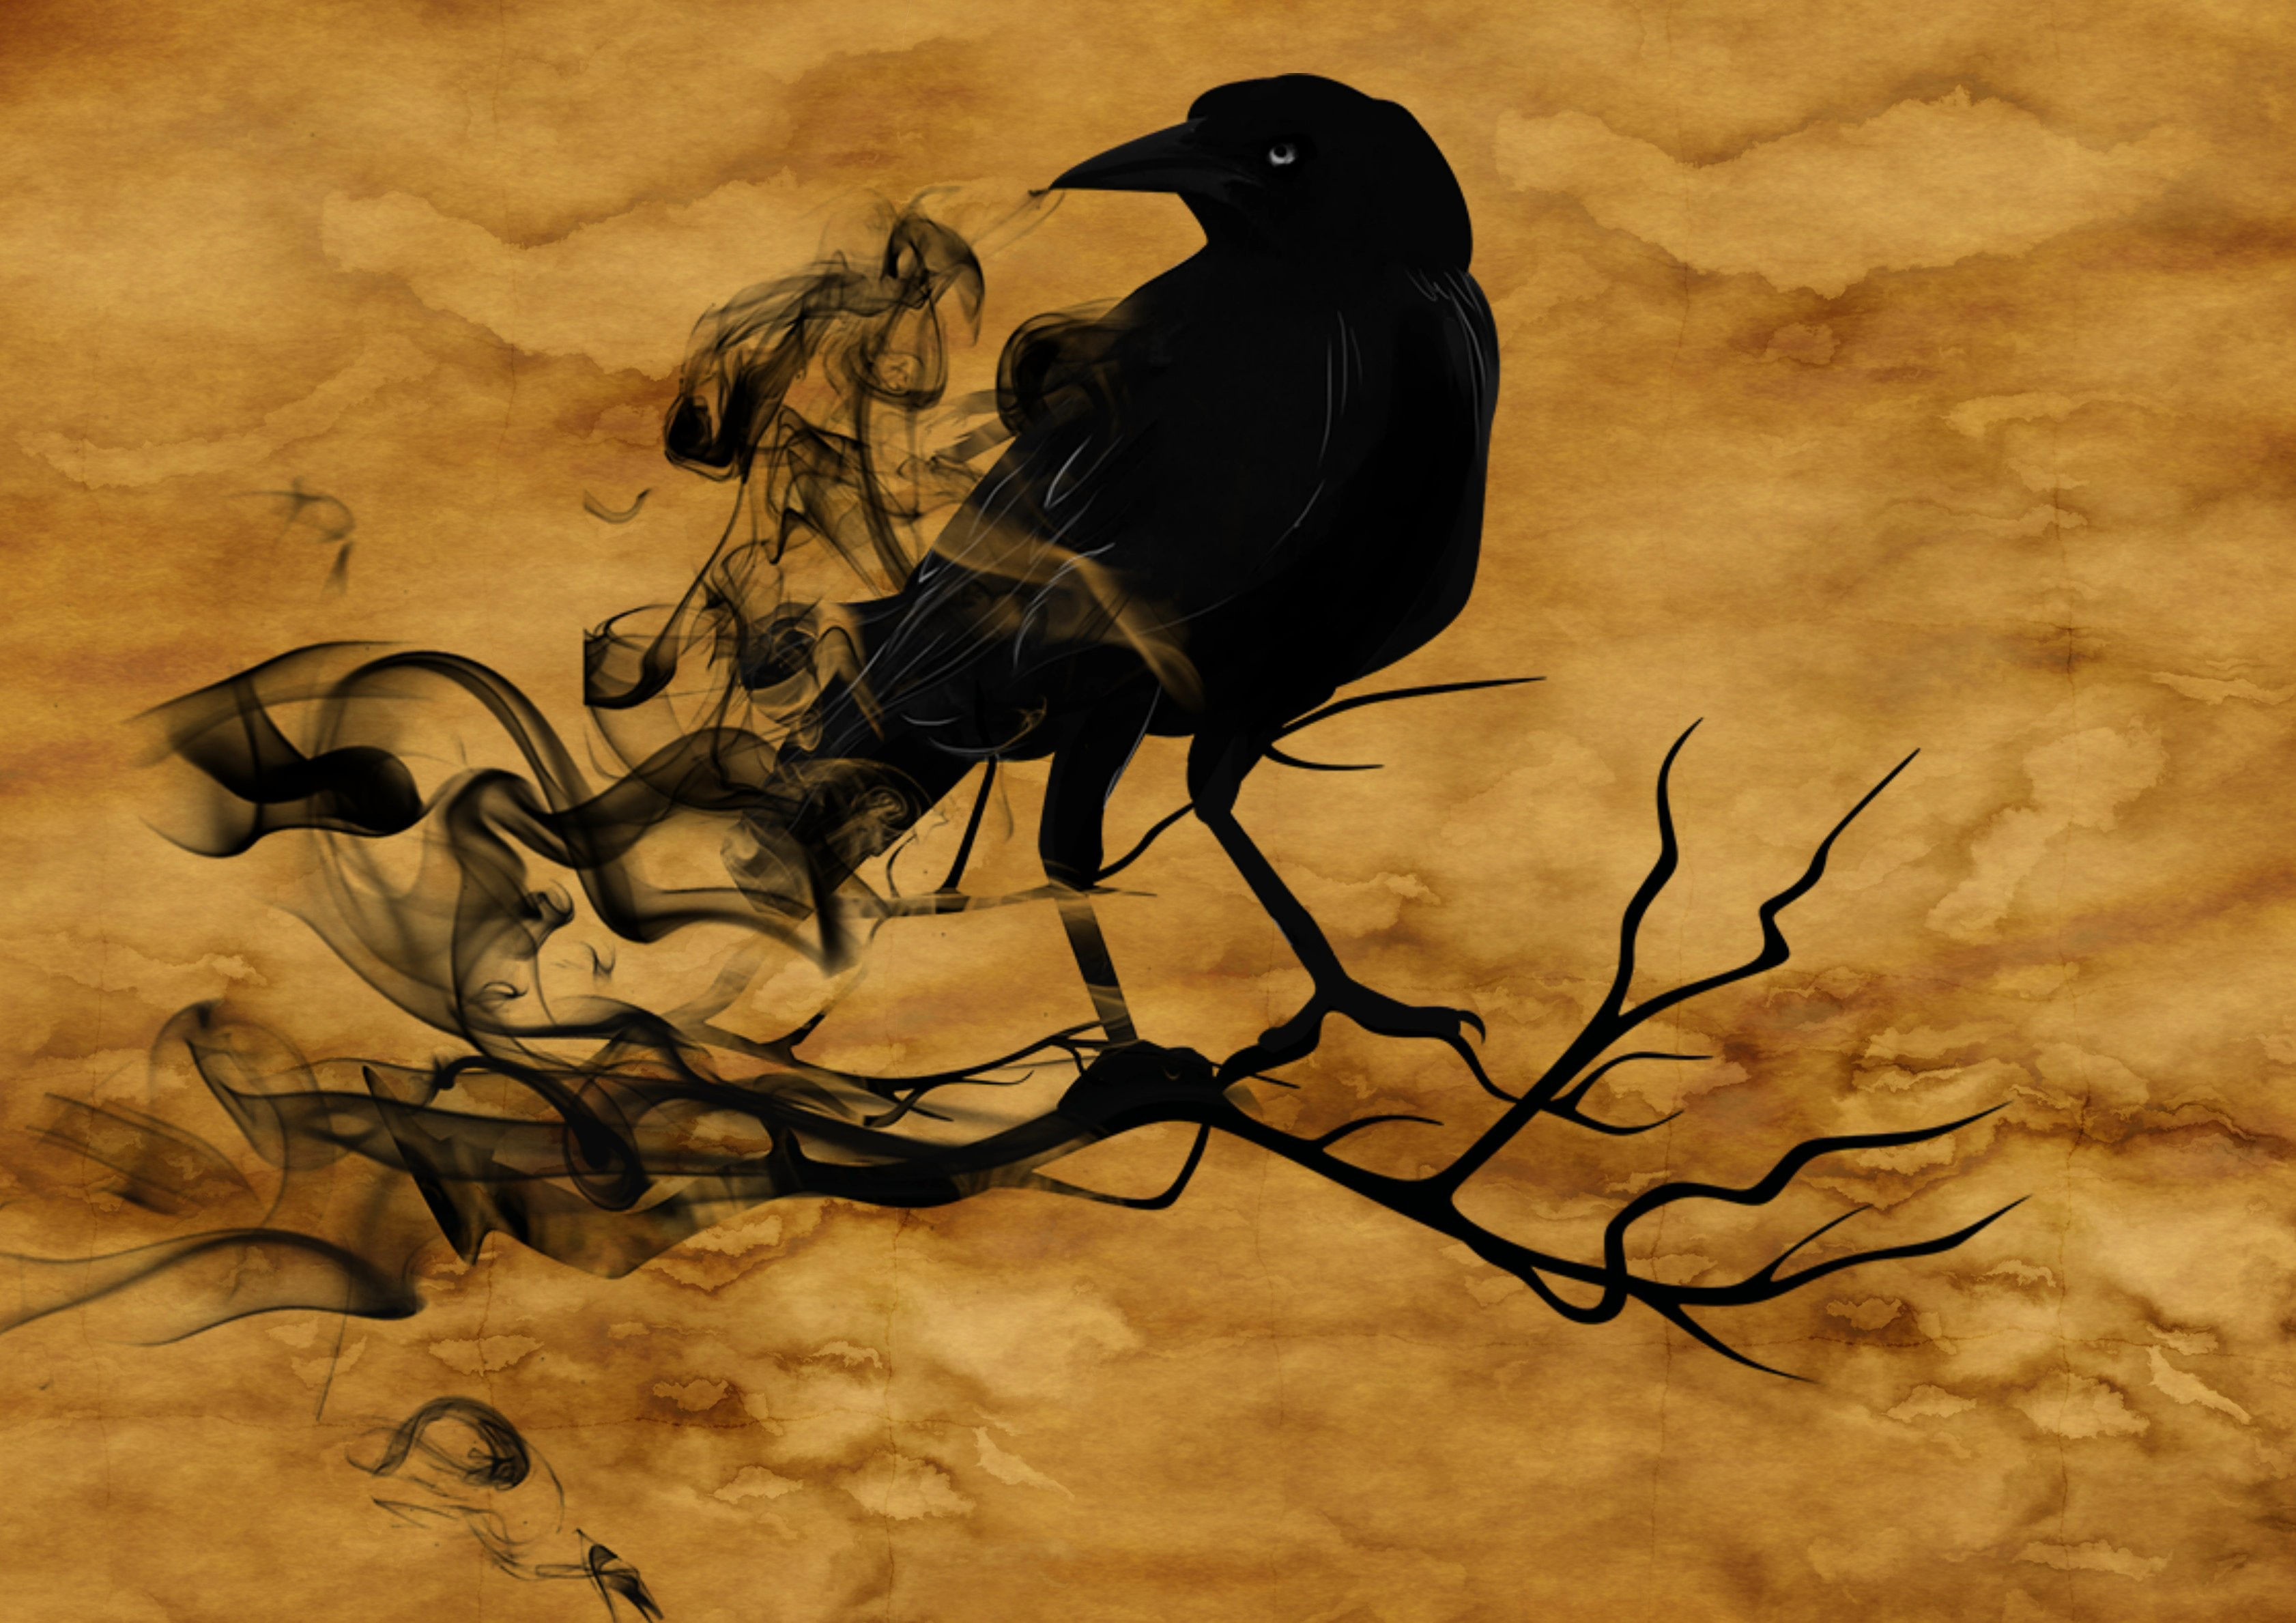 Raven crow, creepy, halloween, fear